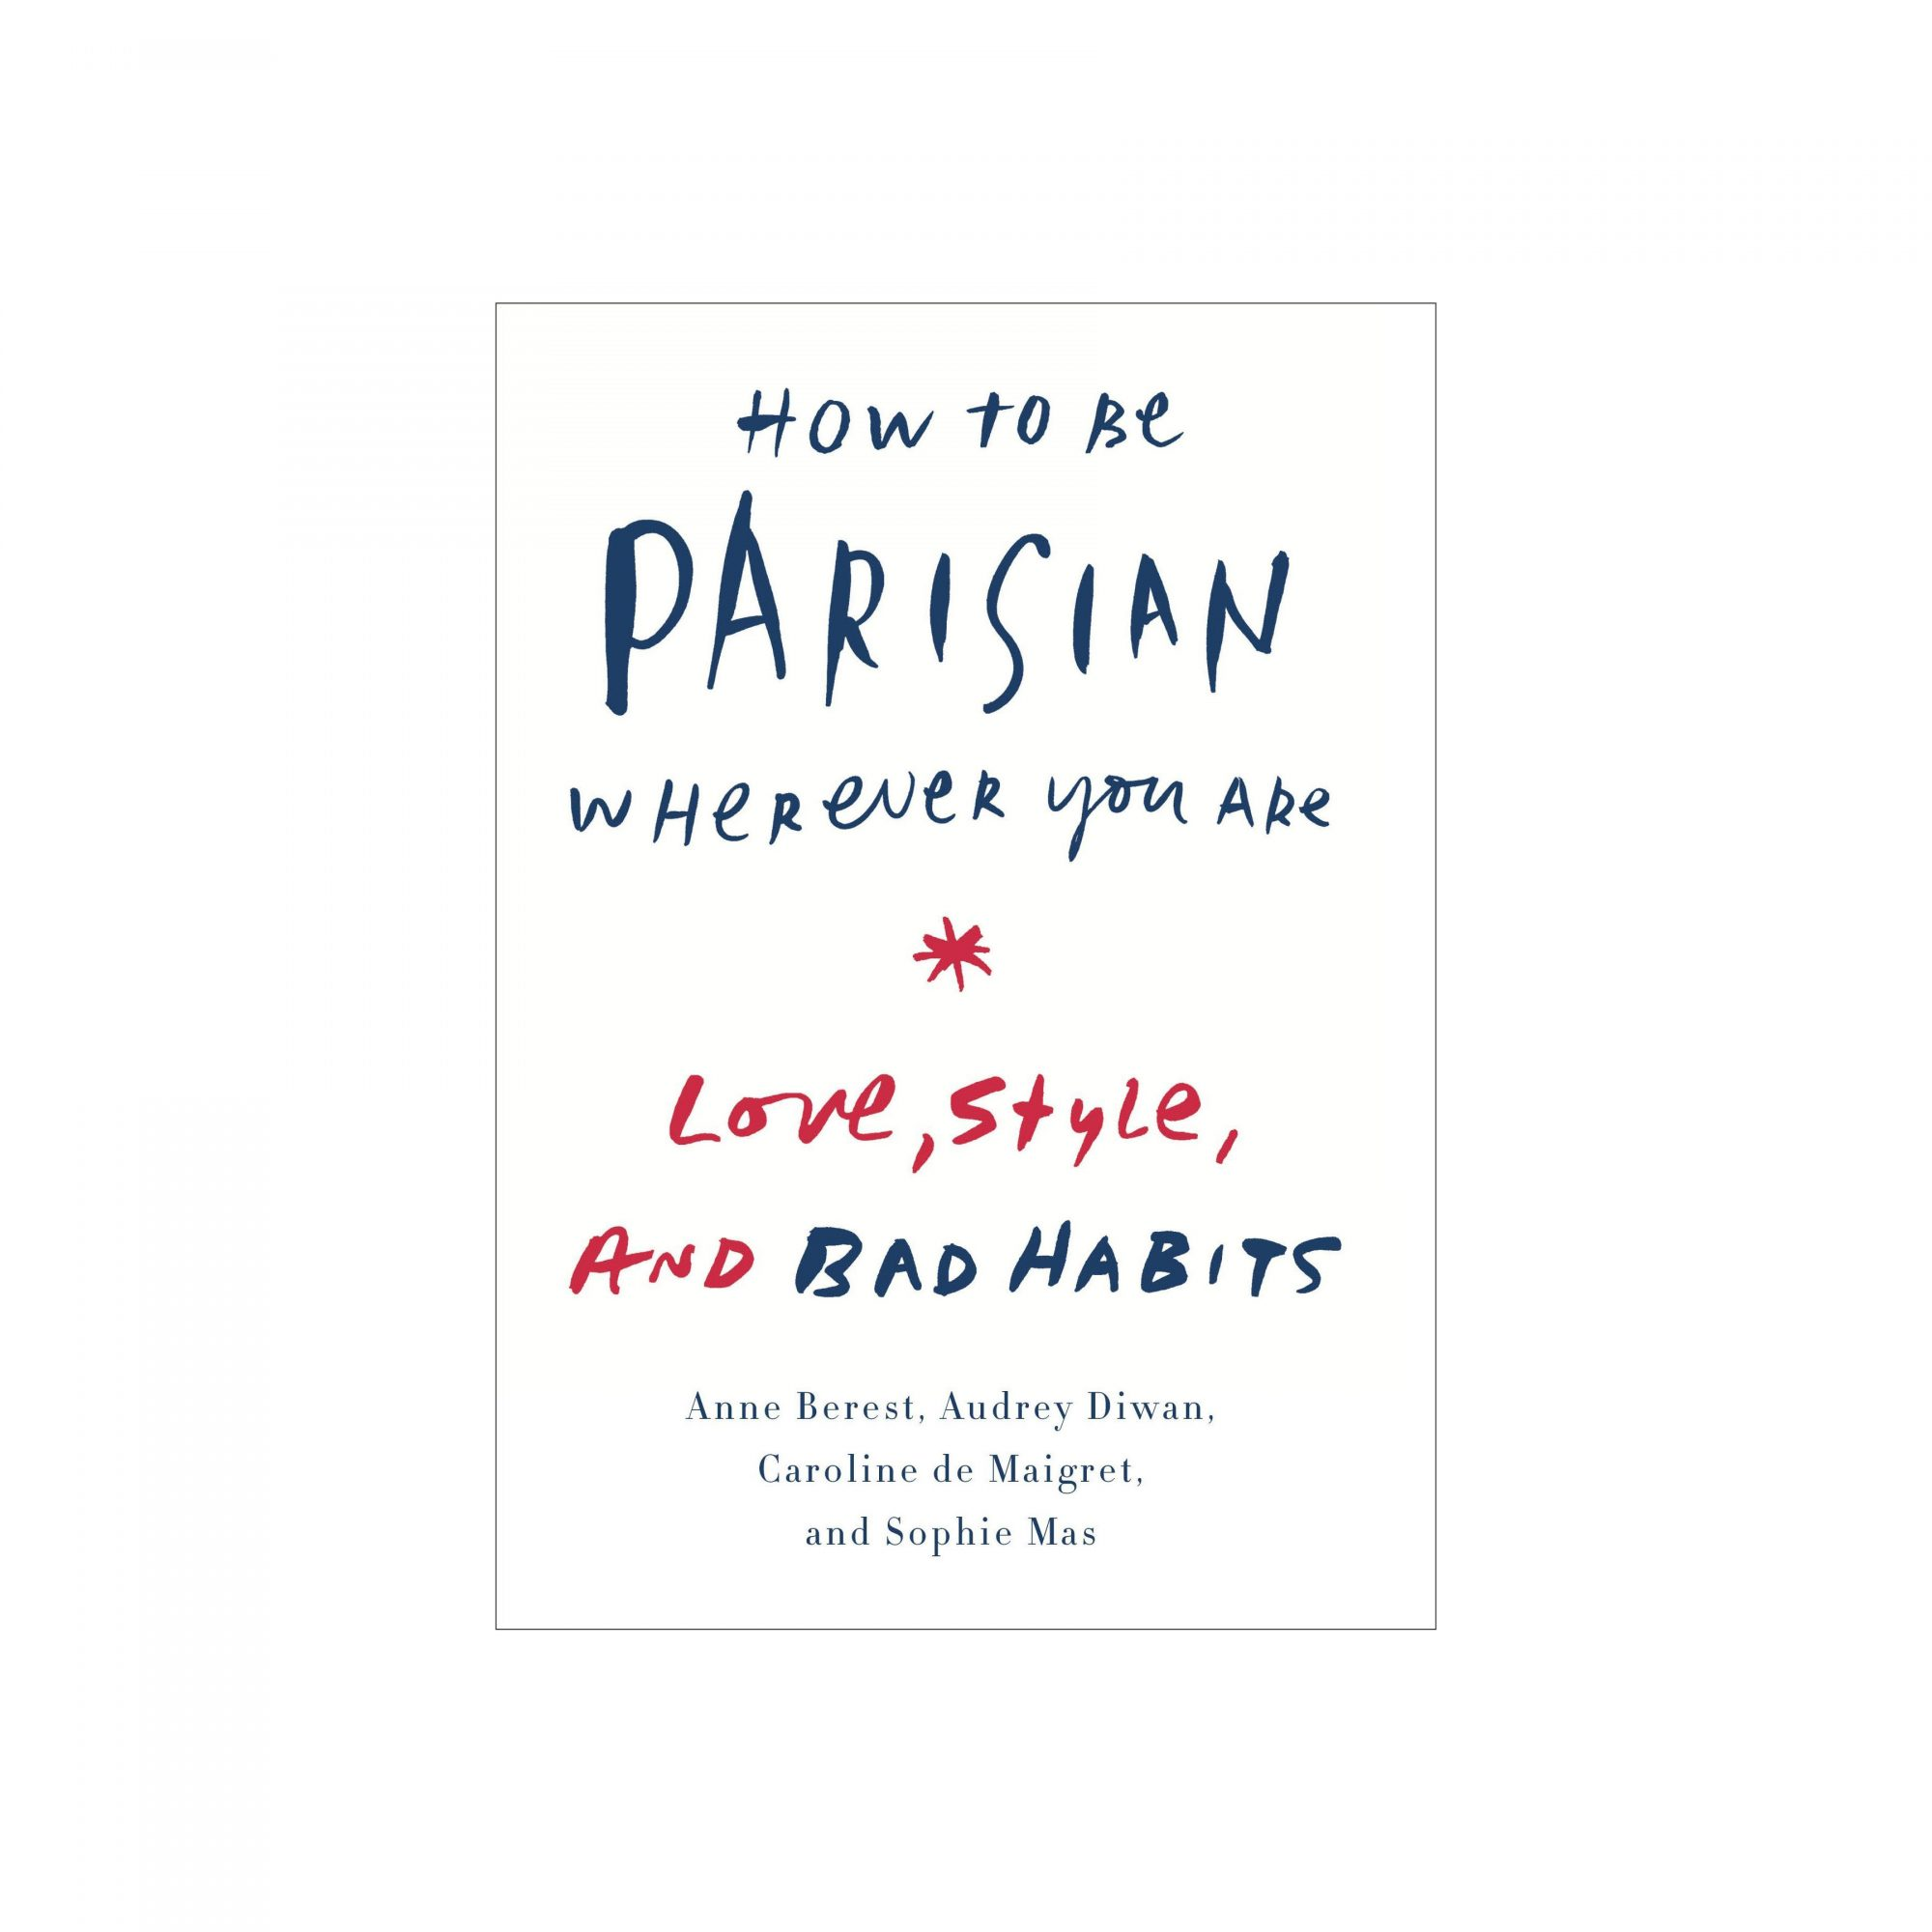 How to Be Parisian Wherever You Are: Love, Style, and Bad Habits, by Anne Berest